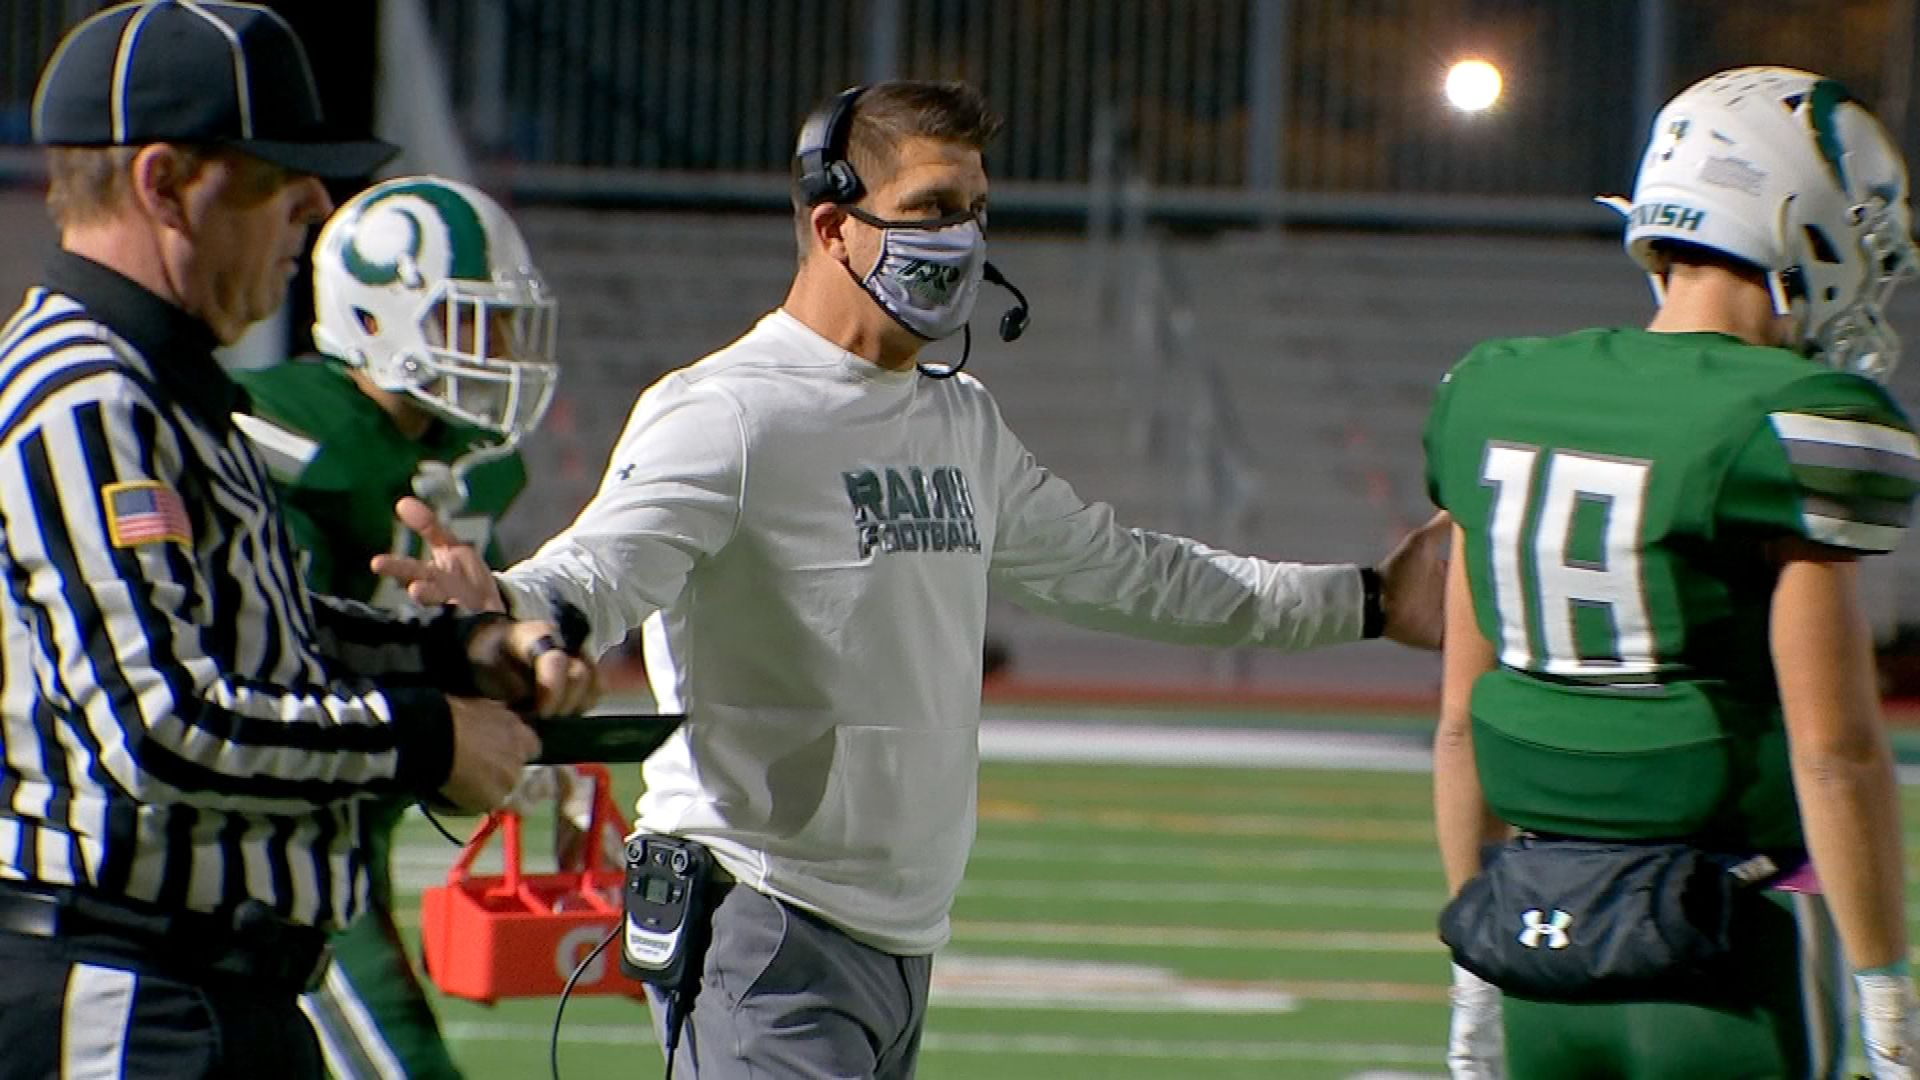 Pine-Richland School District moving forward with new football coach